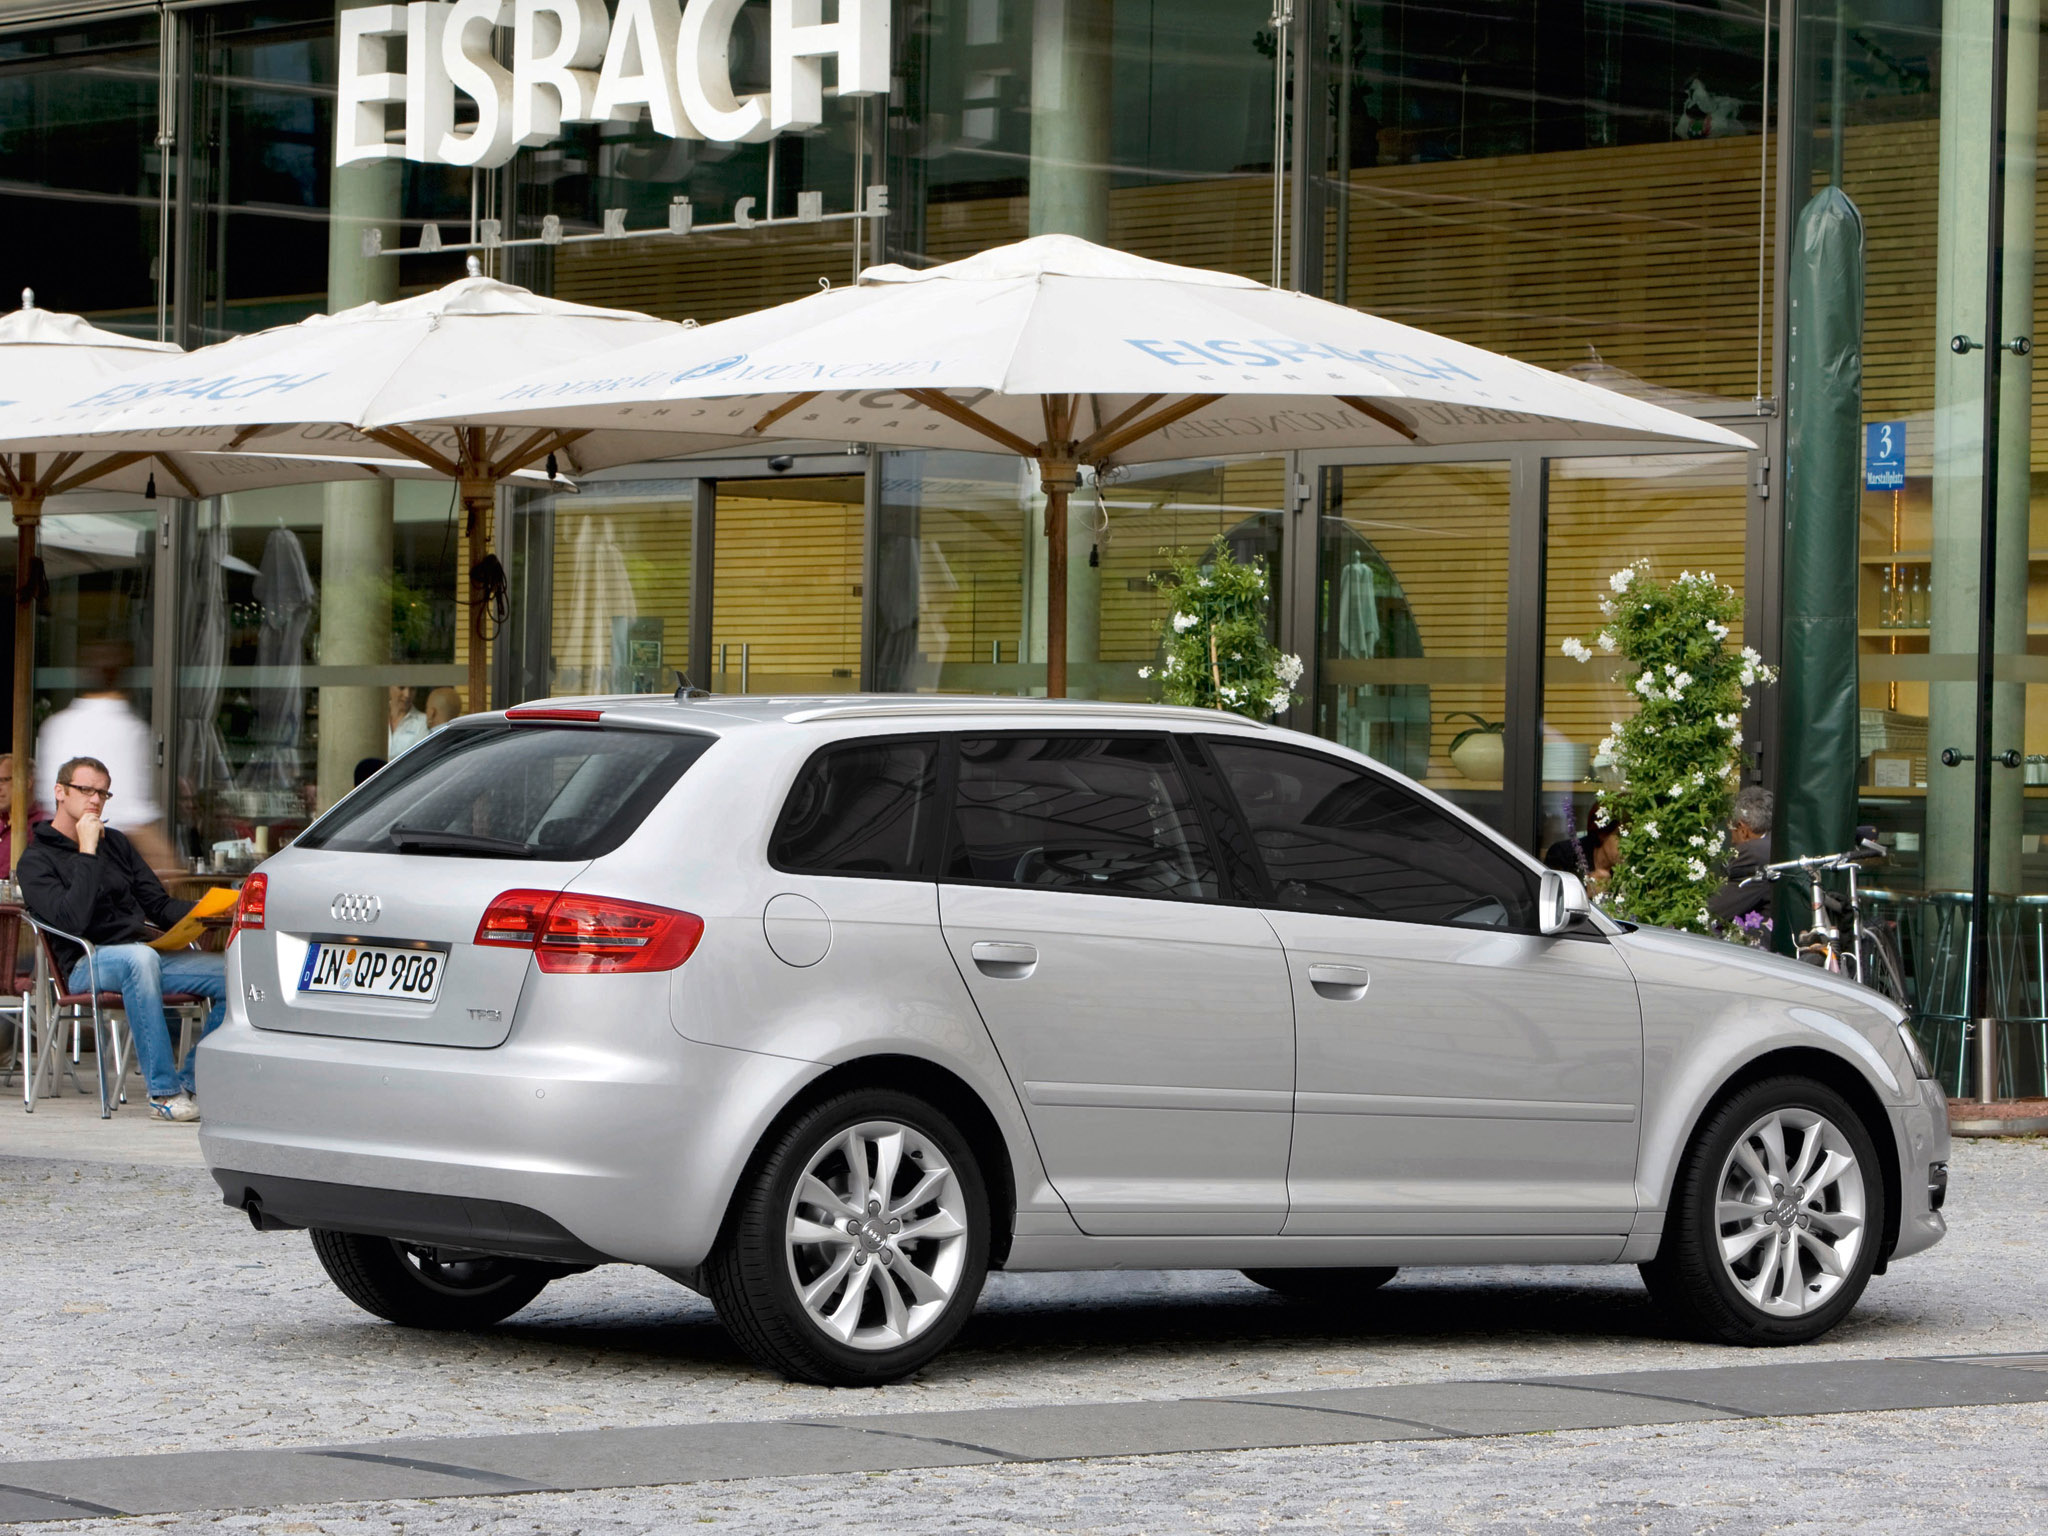 audi a3 sportback 8pa 2010 audi a3 sportback 8pa 2010 photo 09 car in pictures car photo gallery. Black Bedroom Furniture Sets. Home Design Ideas